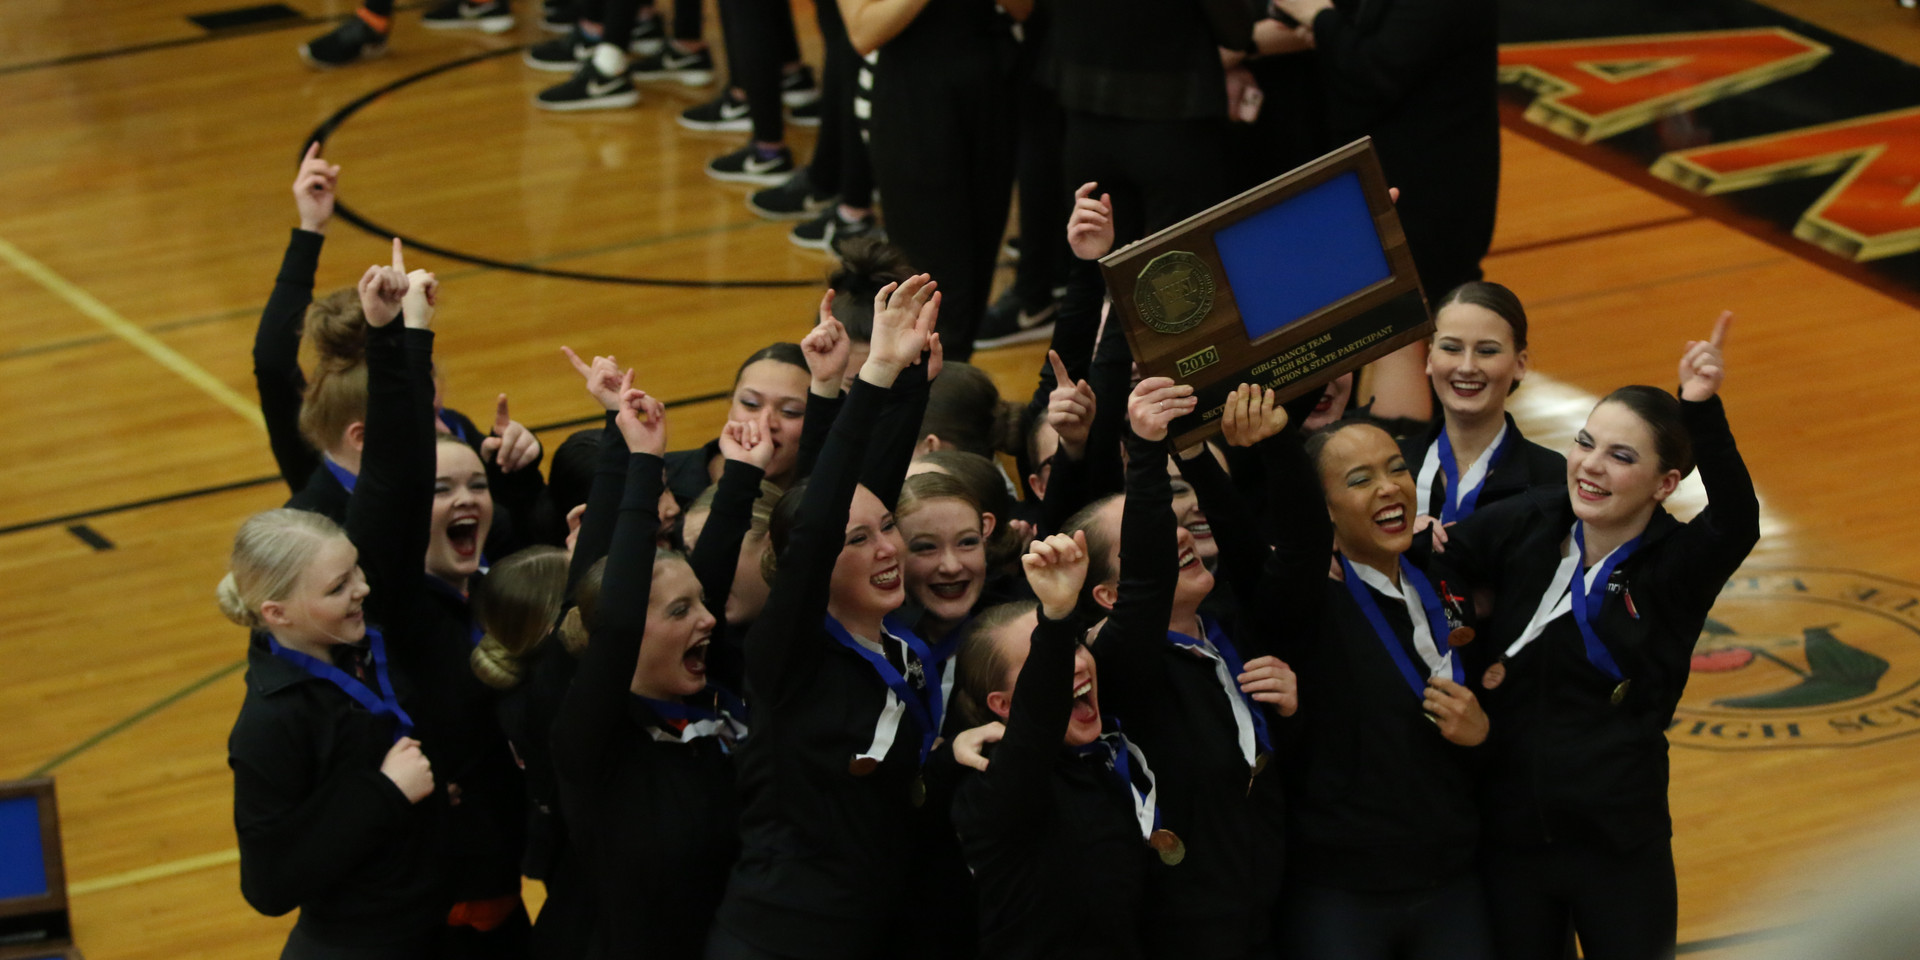 Sections Kick Champs!